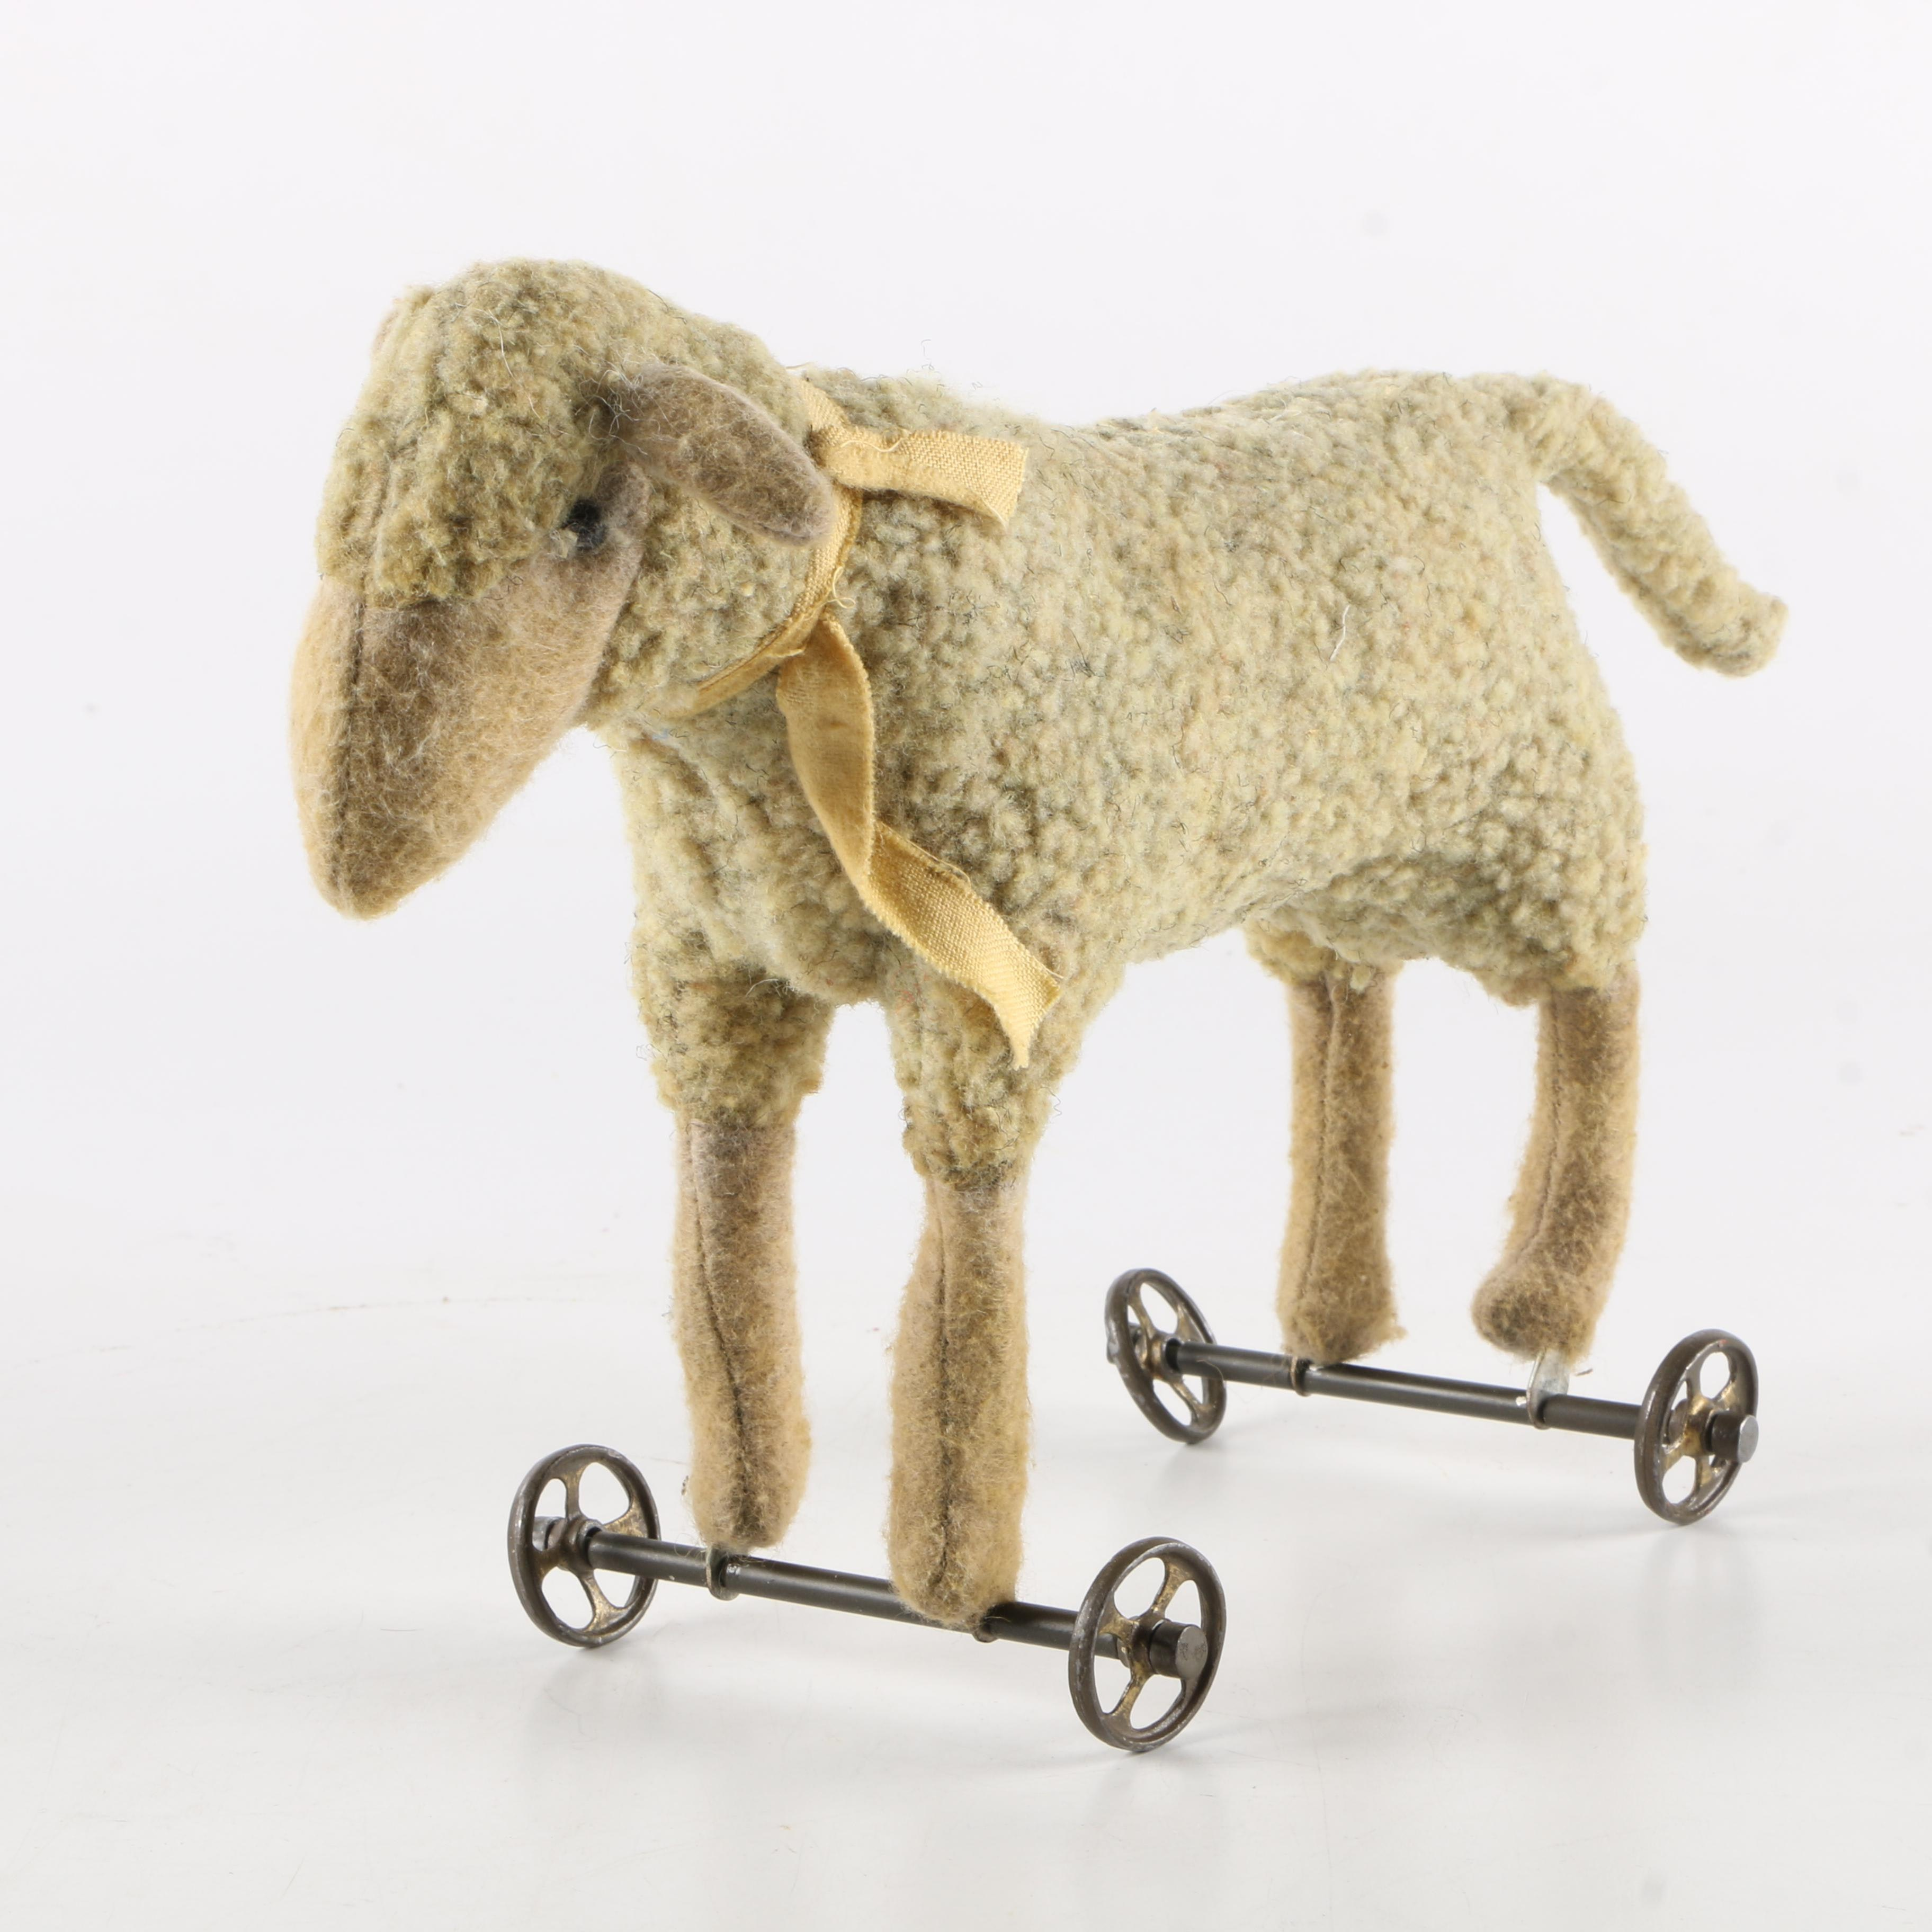 Vintage Rolling Sheep Toy